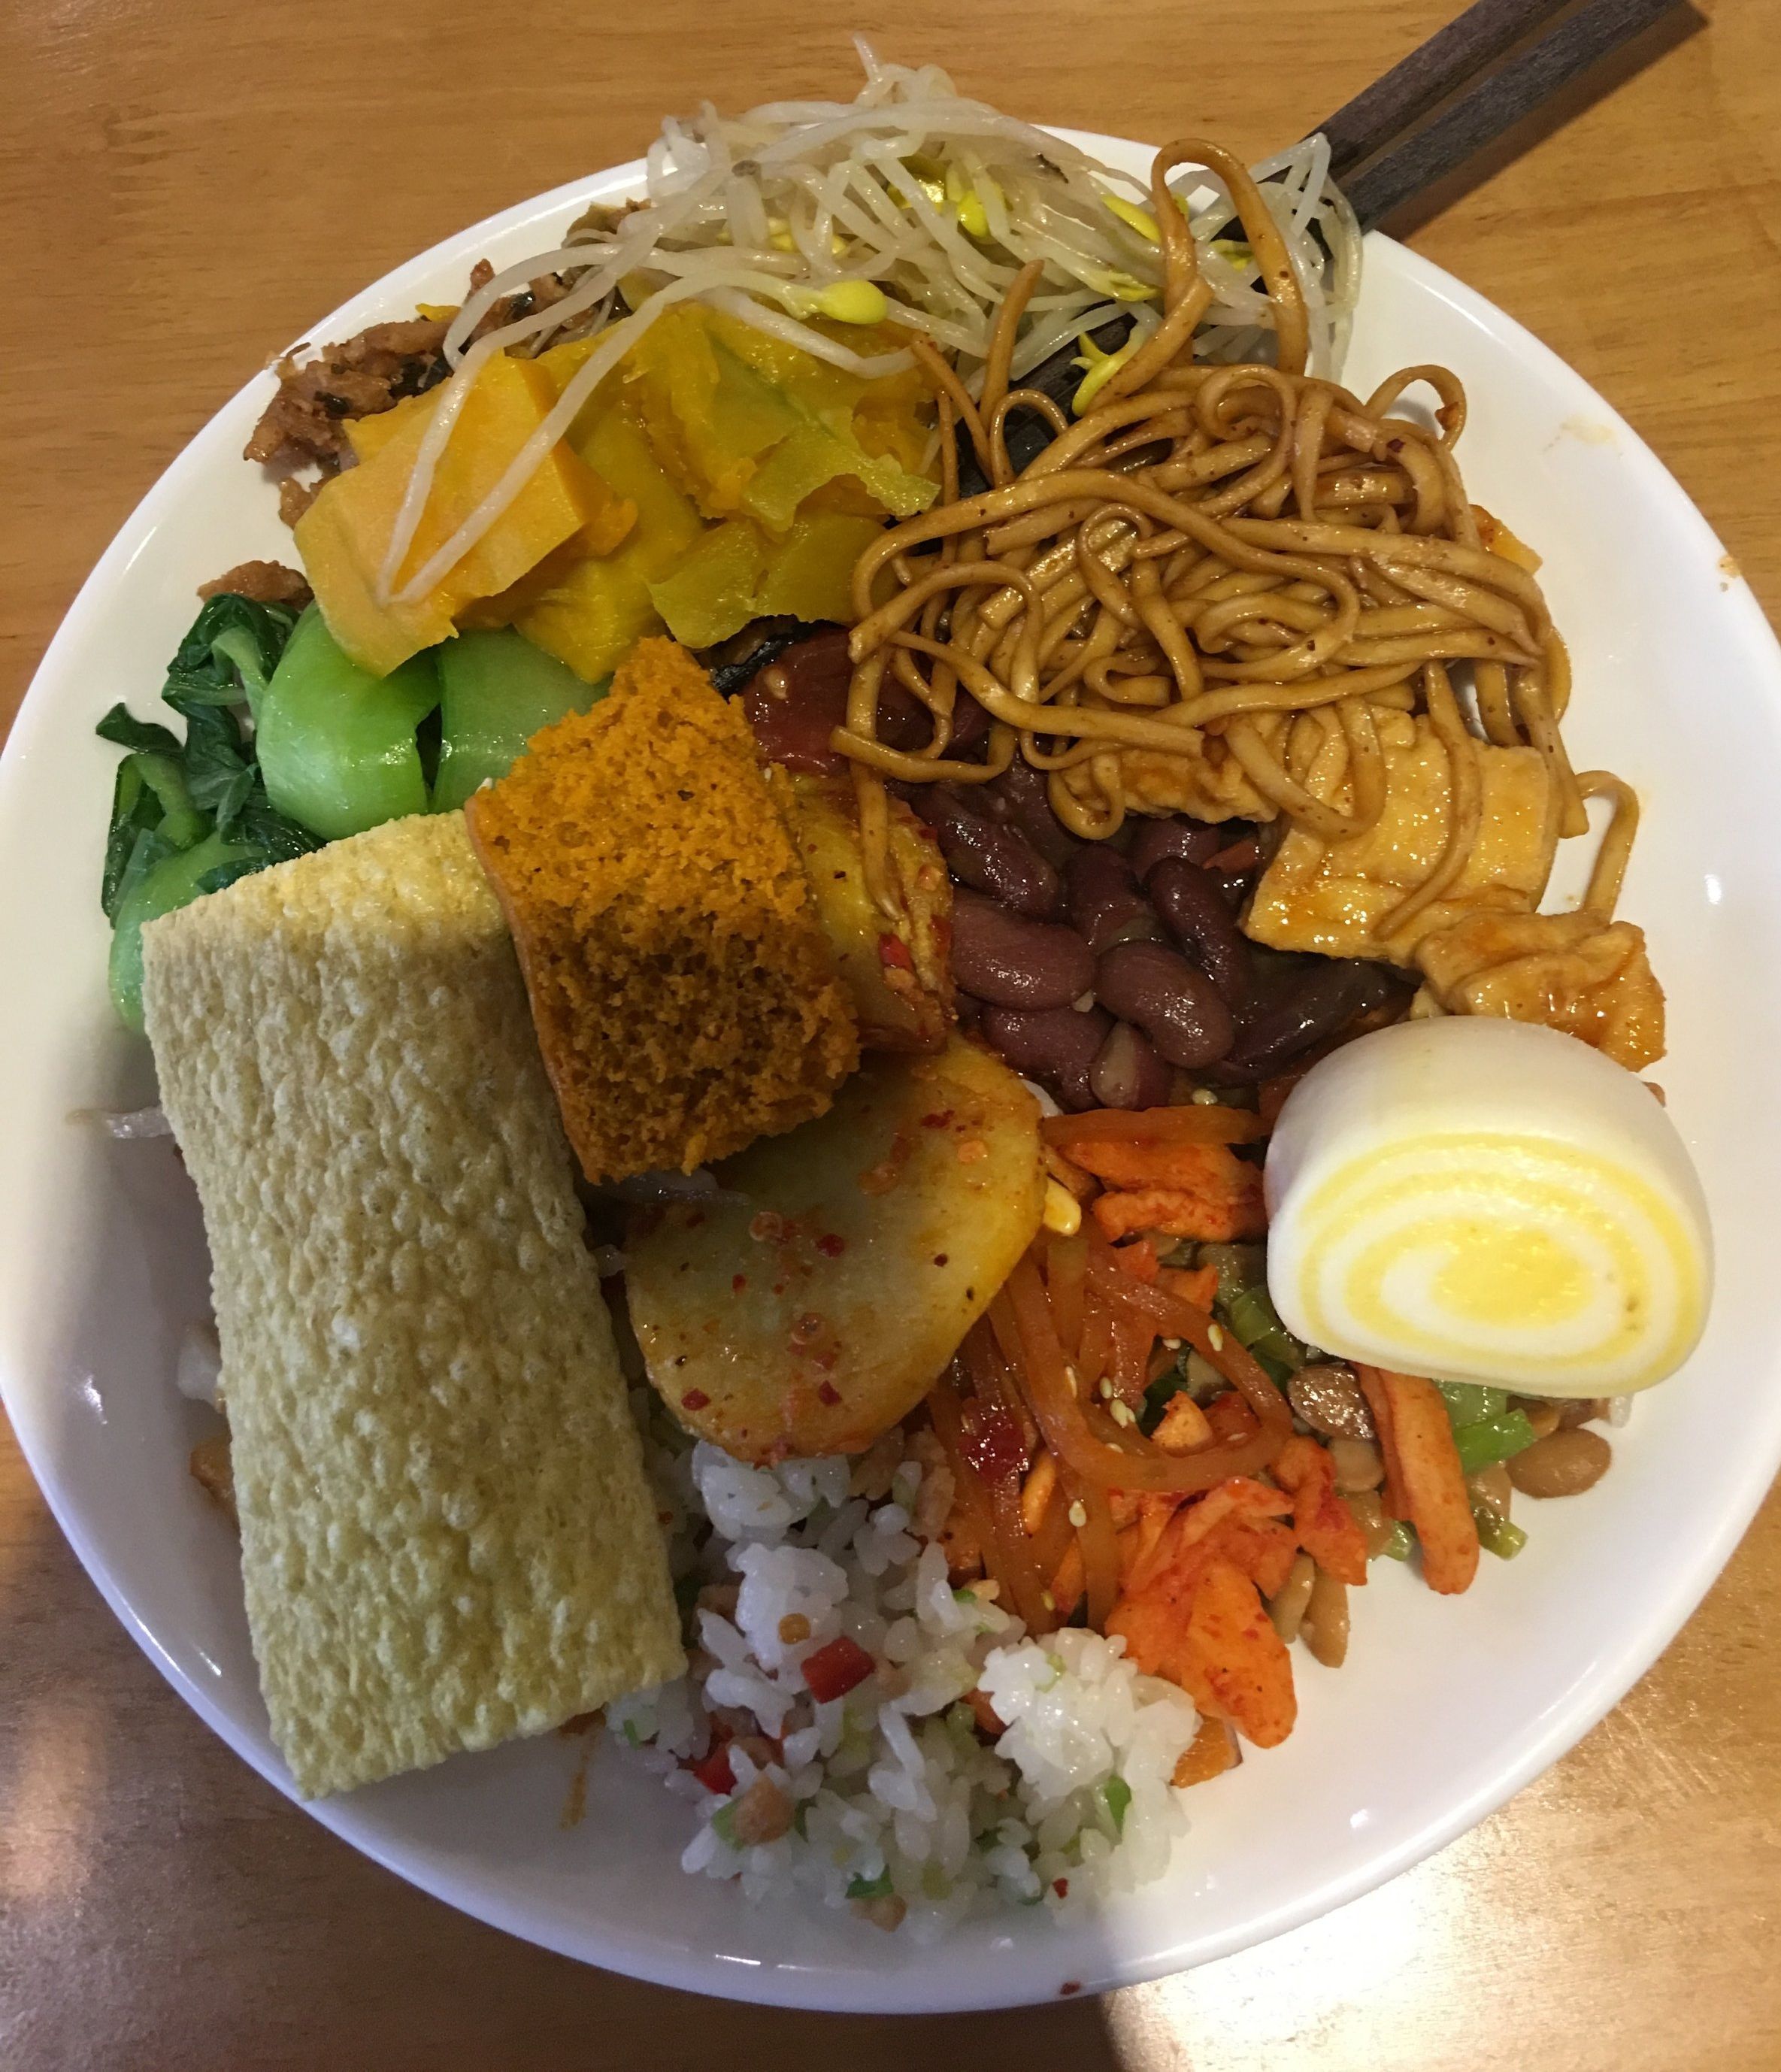 In Buddhism, wasted food is frowned upon, so I had to eat it all.